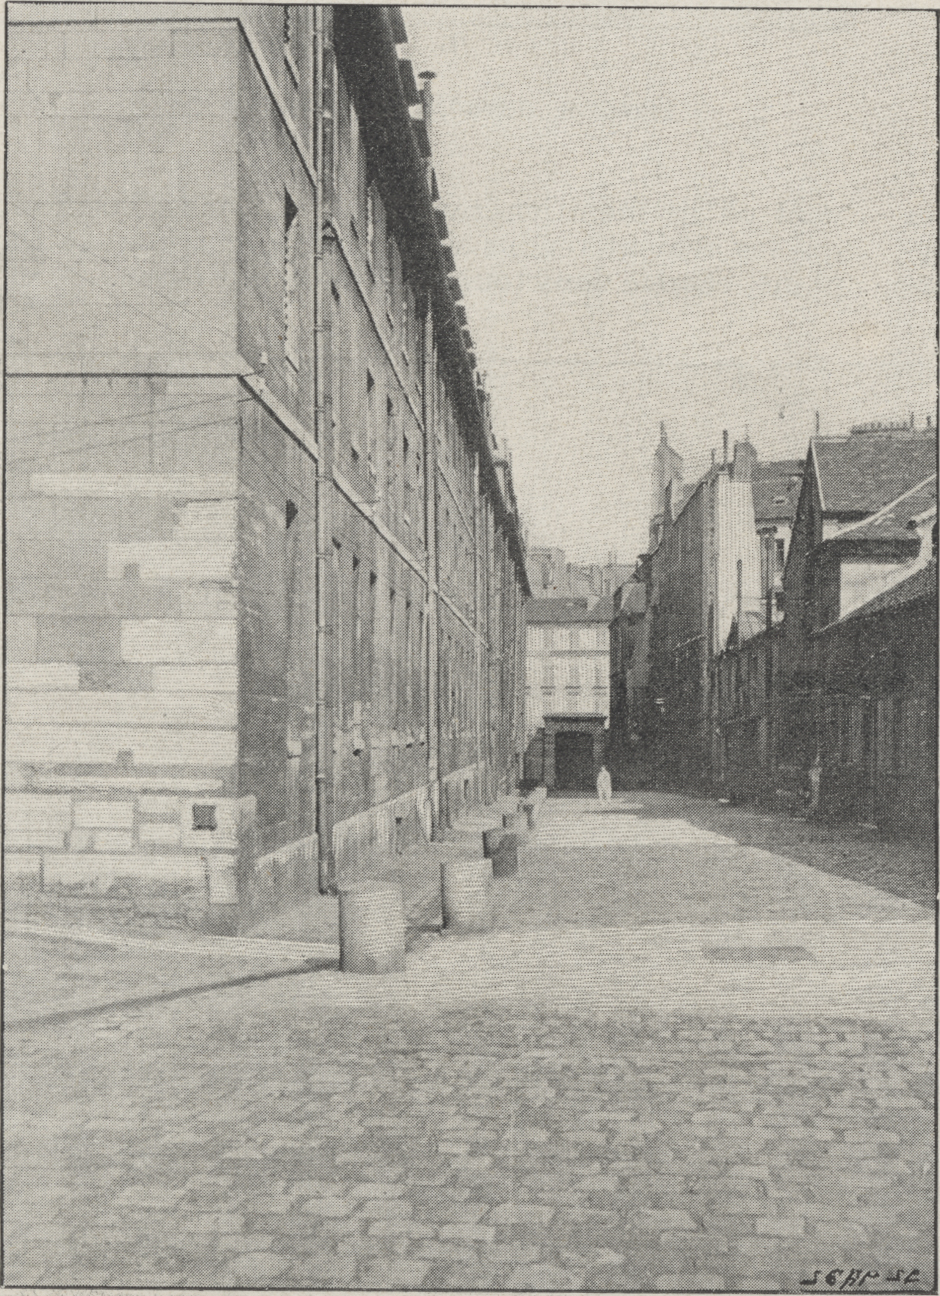 Exterior view, facing east, interior passageway